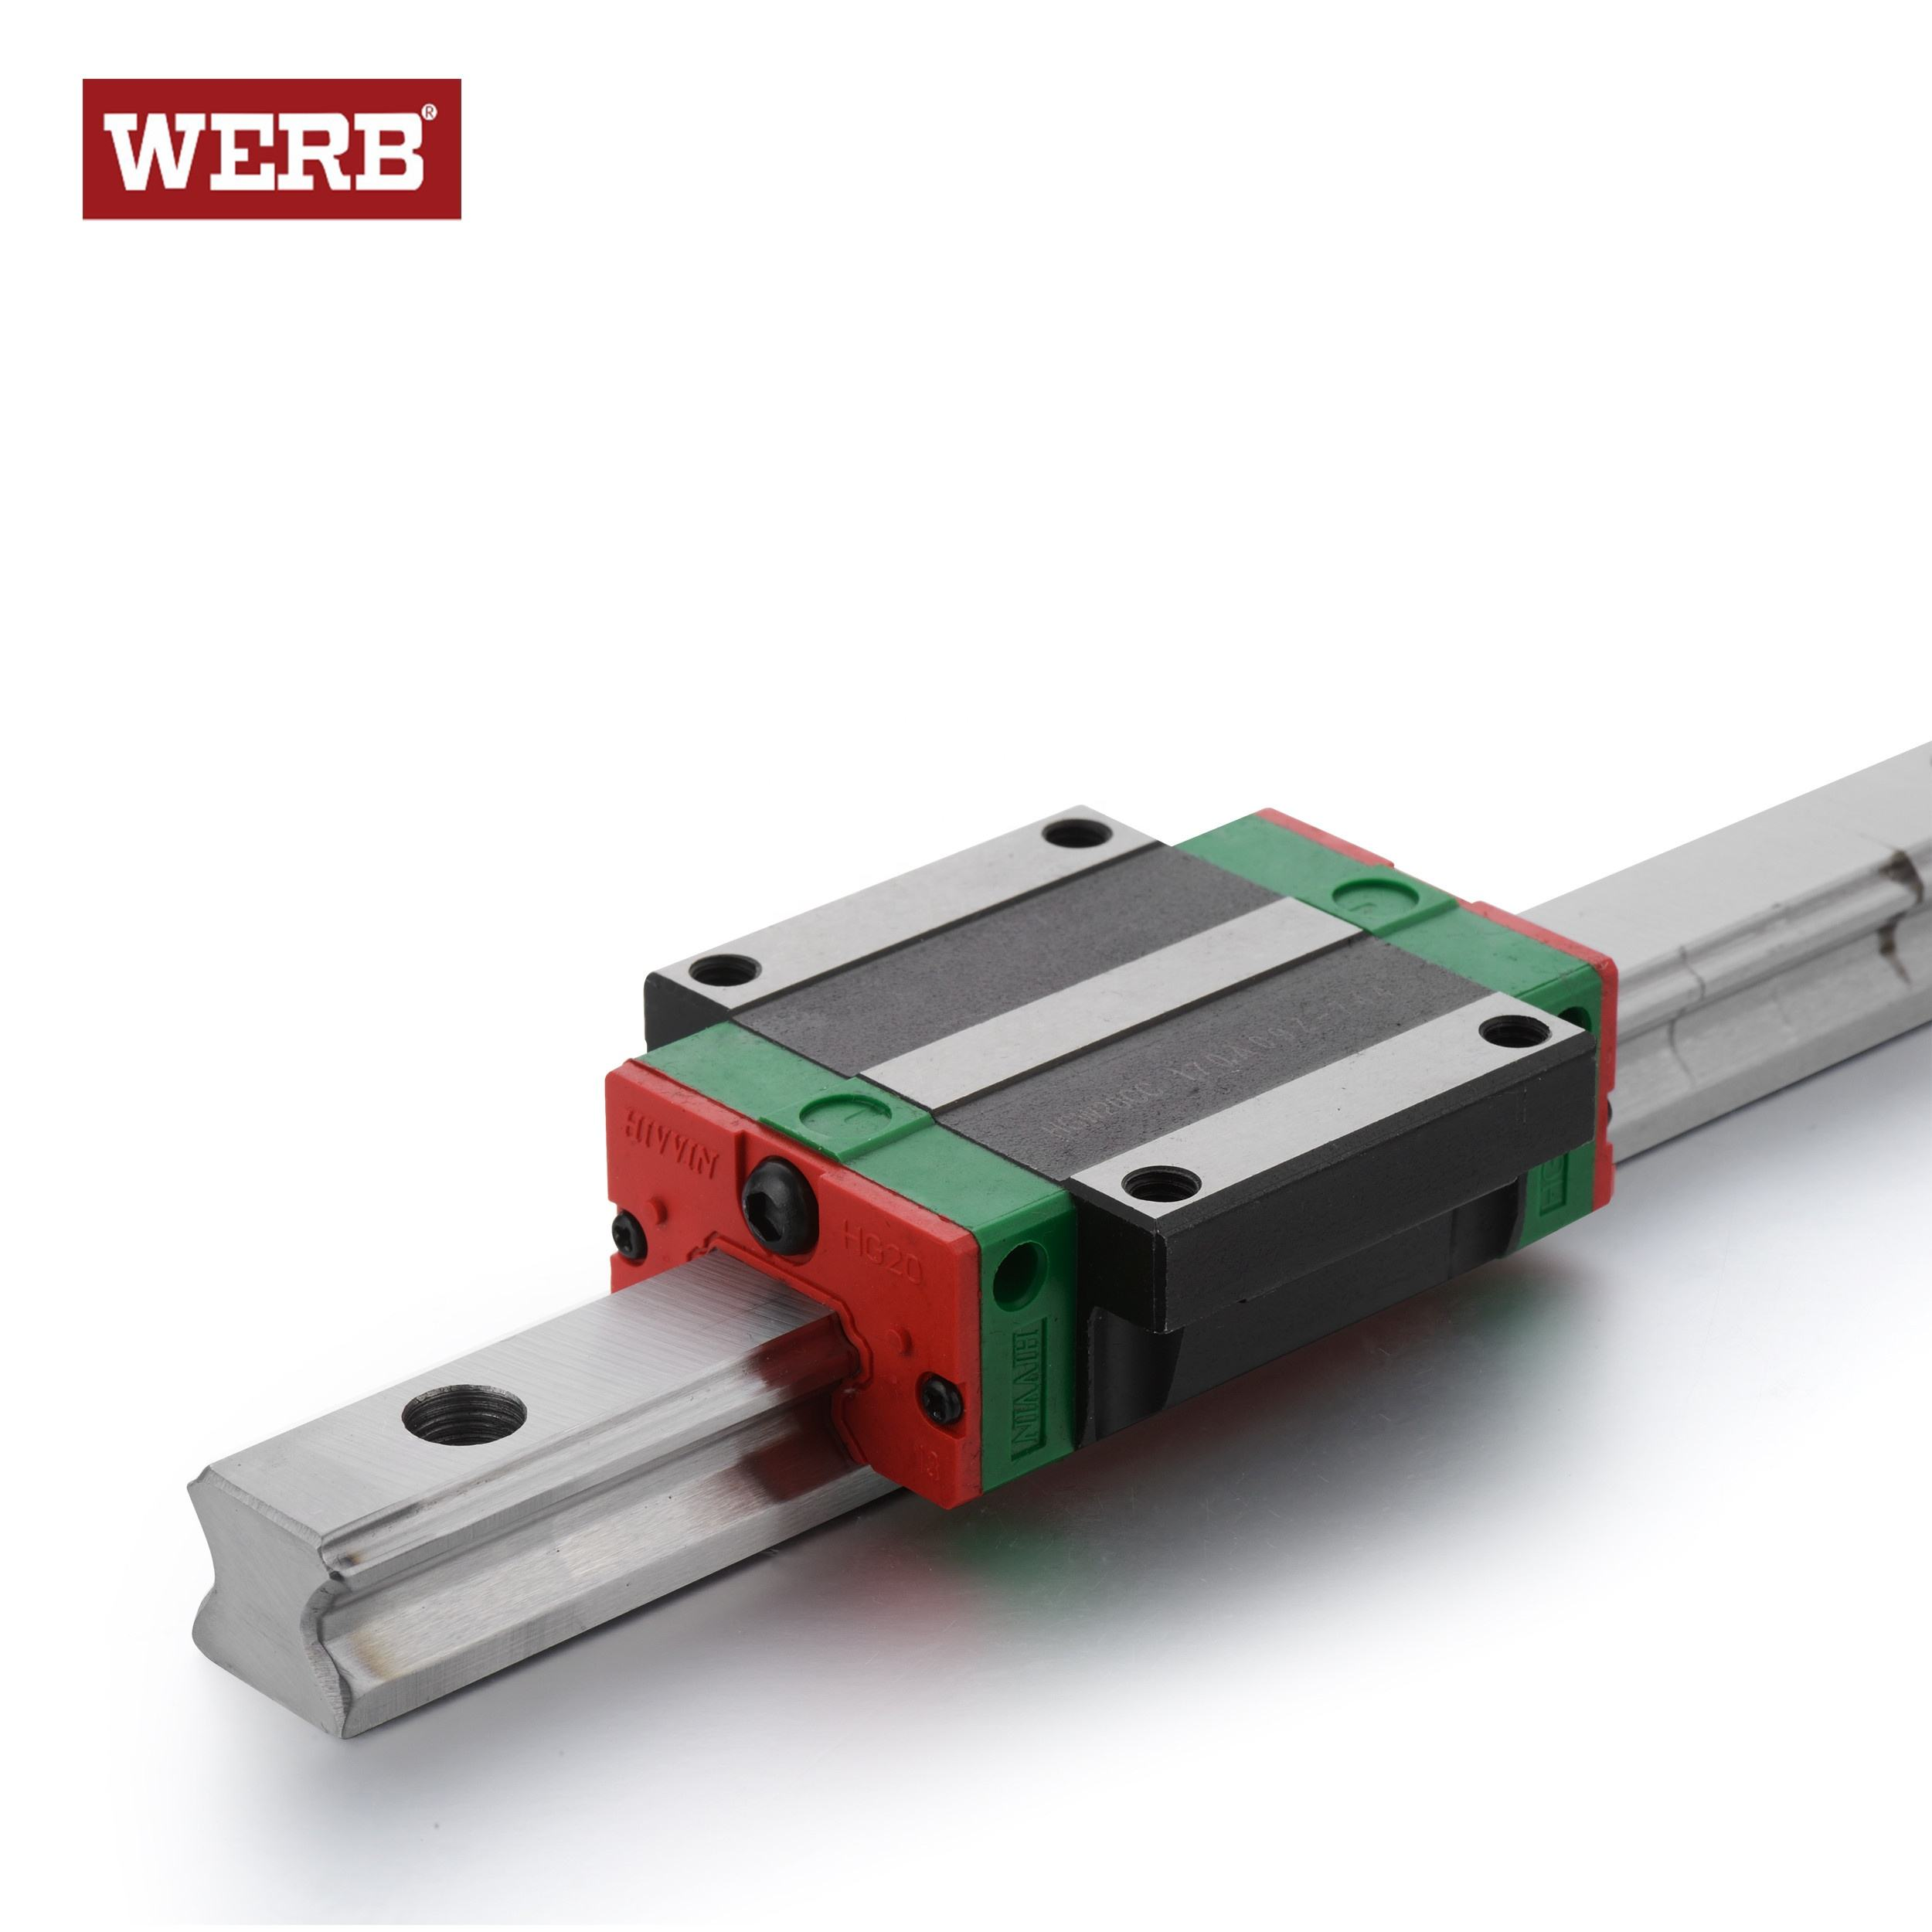 New Hiwin HGW30CCZAC Flange Block Linear Guides HGW30 Series up to 4000mm Long